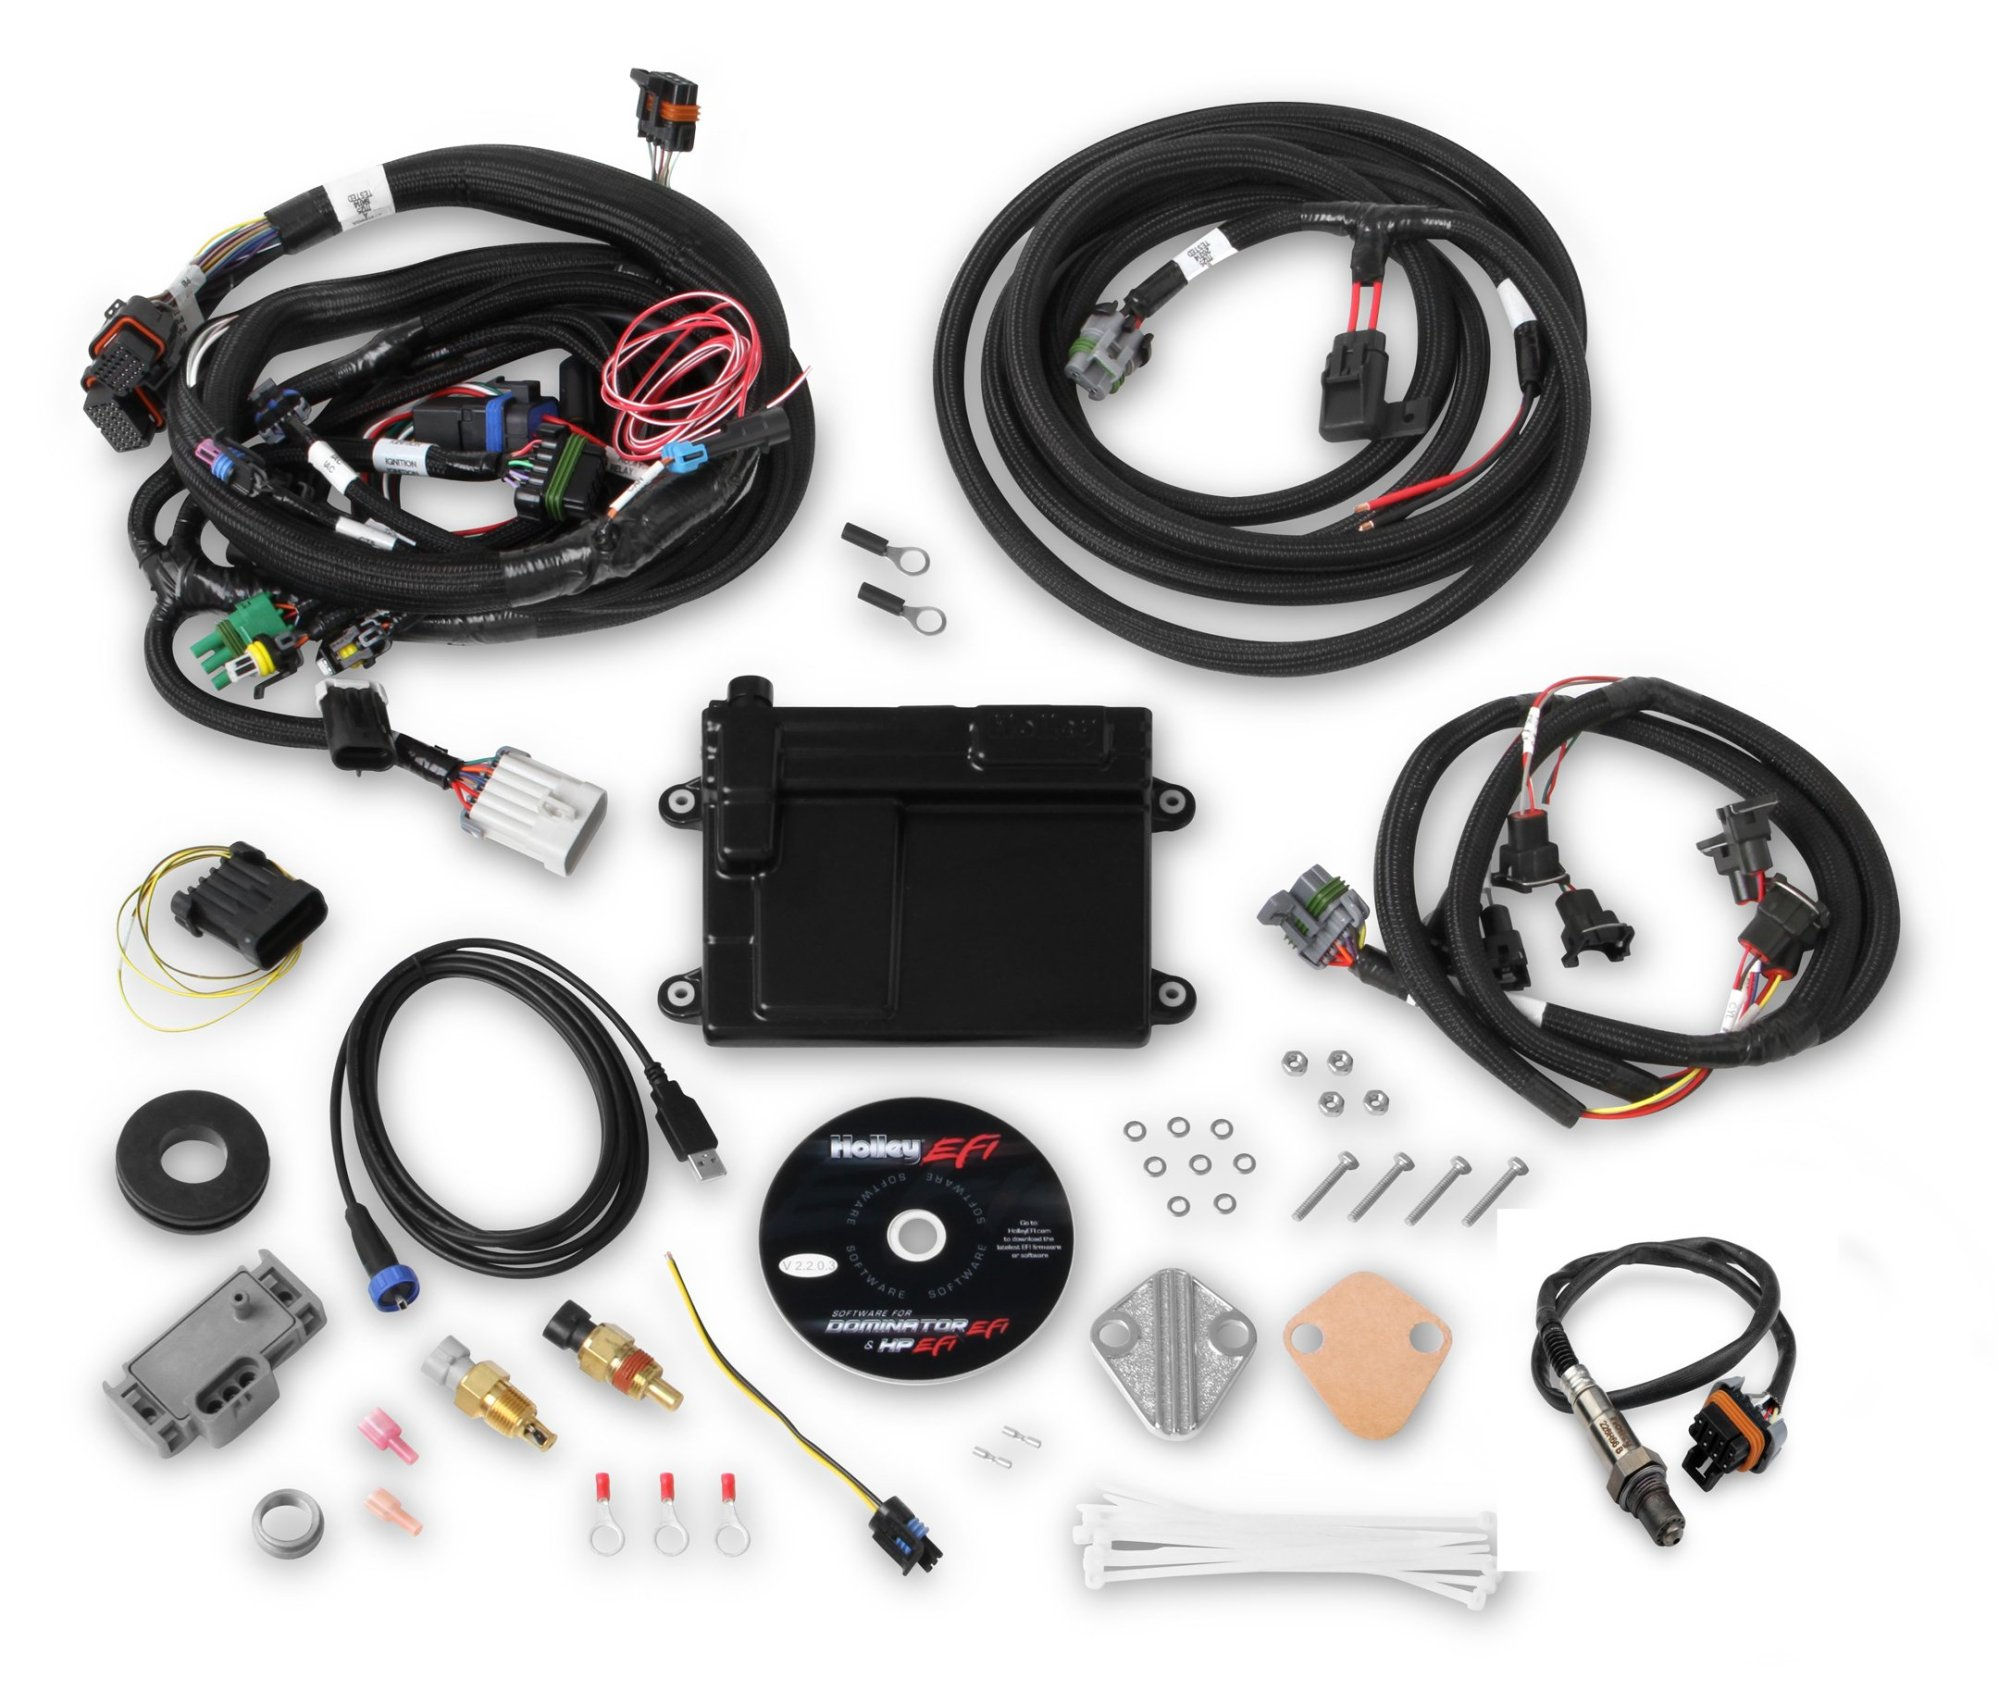 hight resolution of 550 606 hp efi ecu harness kits image